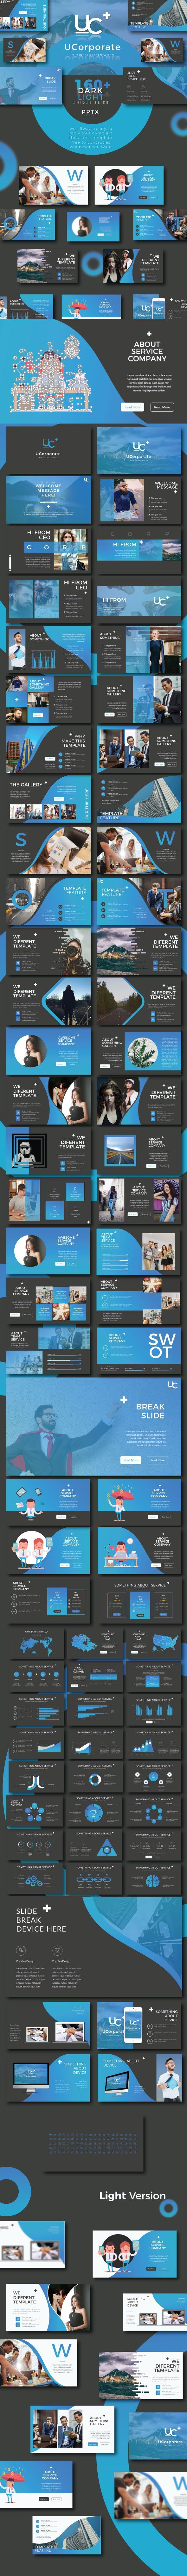 UCorporate - Creative Business Template - Business PowerPoint Templates